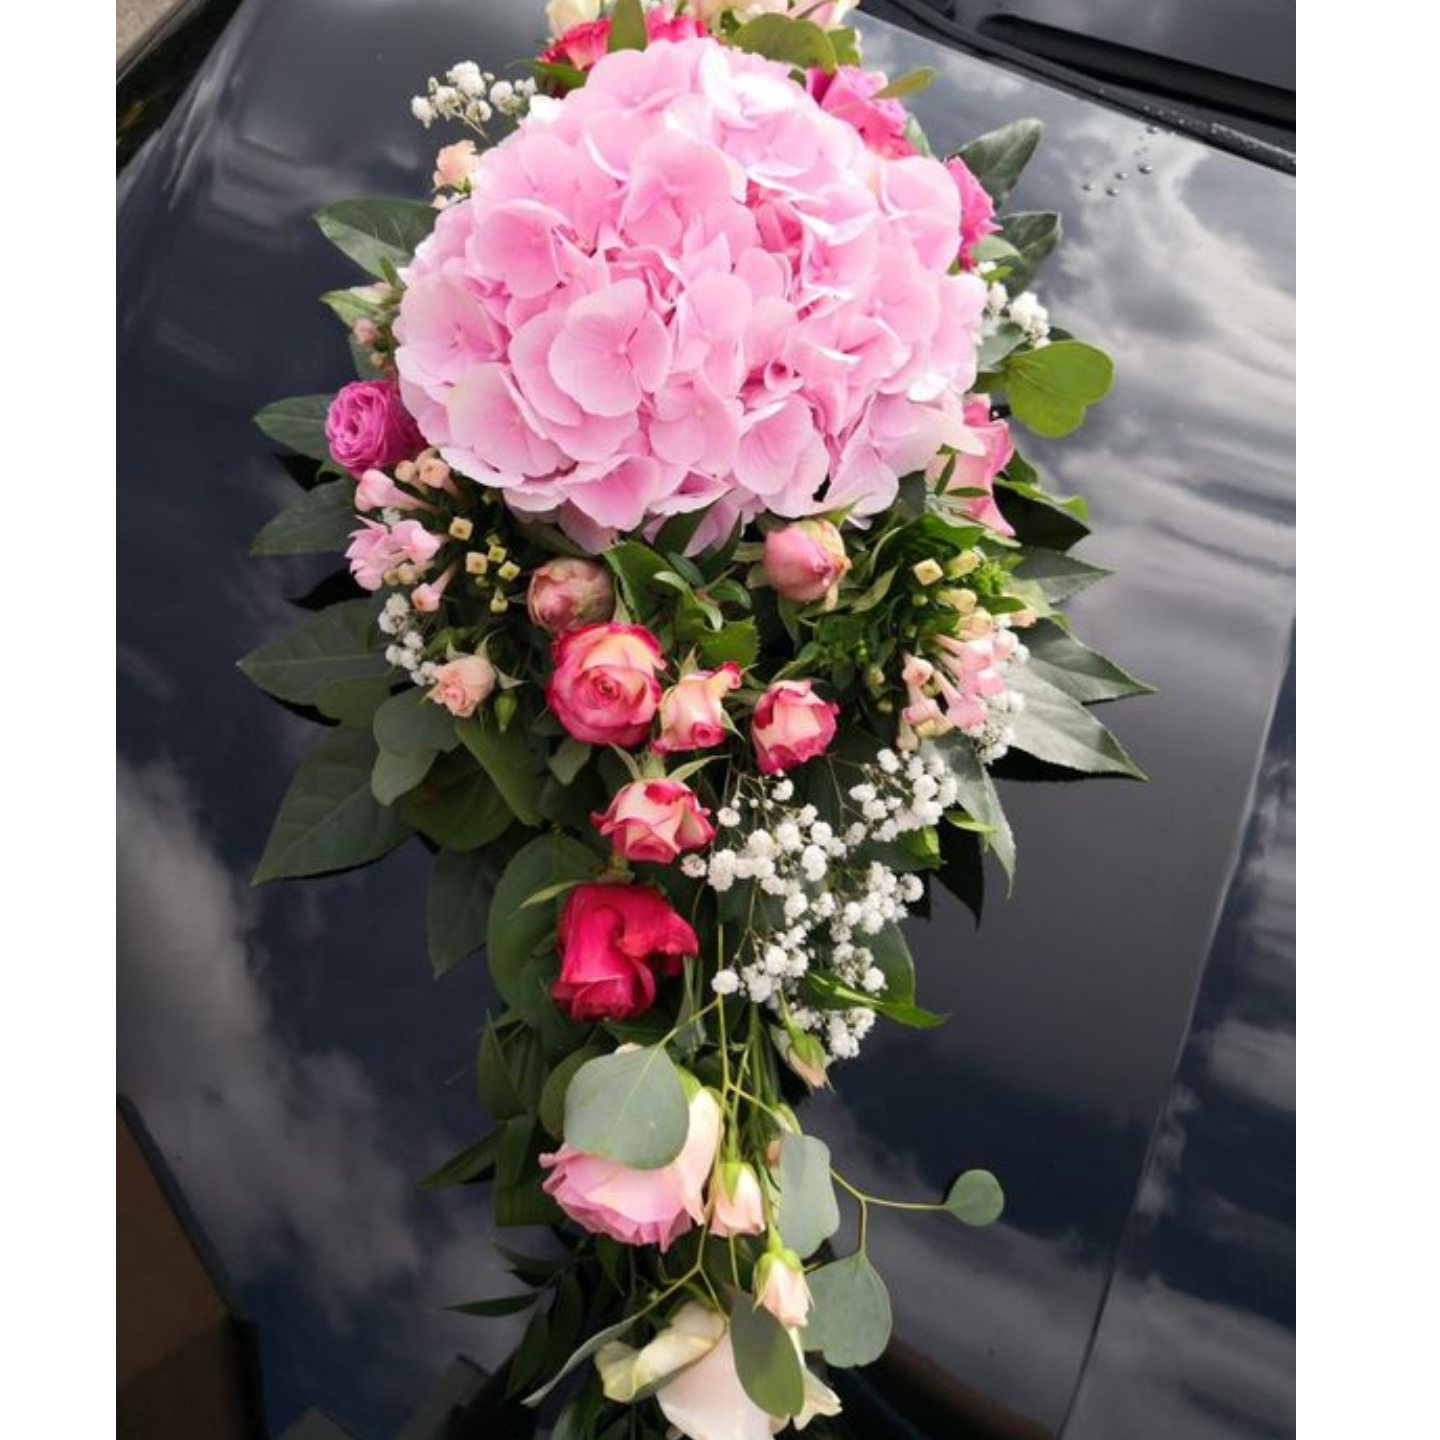 Wedding Car Décor                                                                                     Hydrangea + Rose Theme